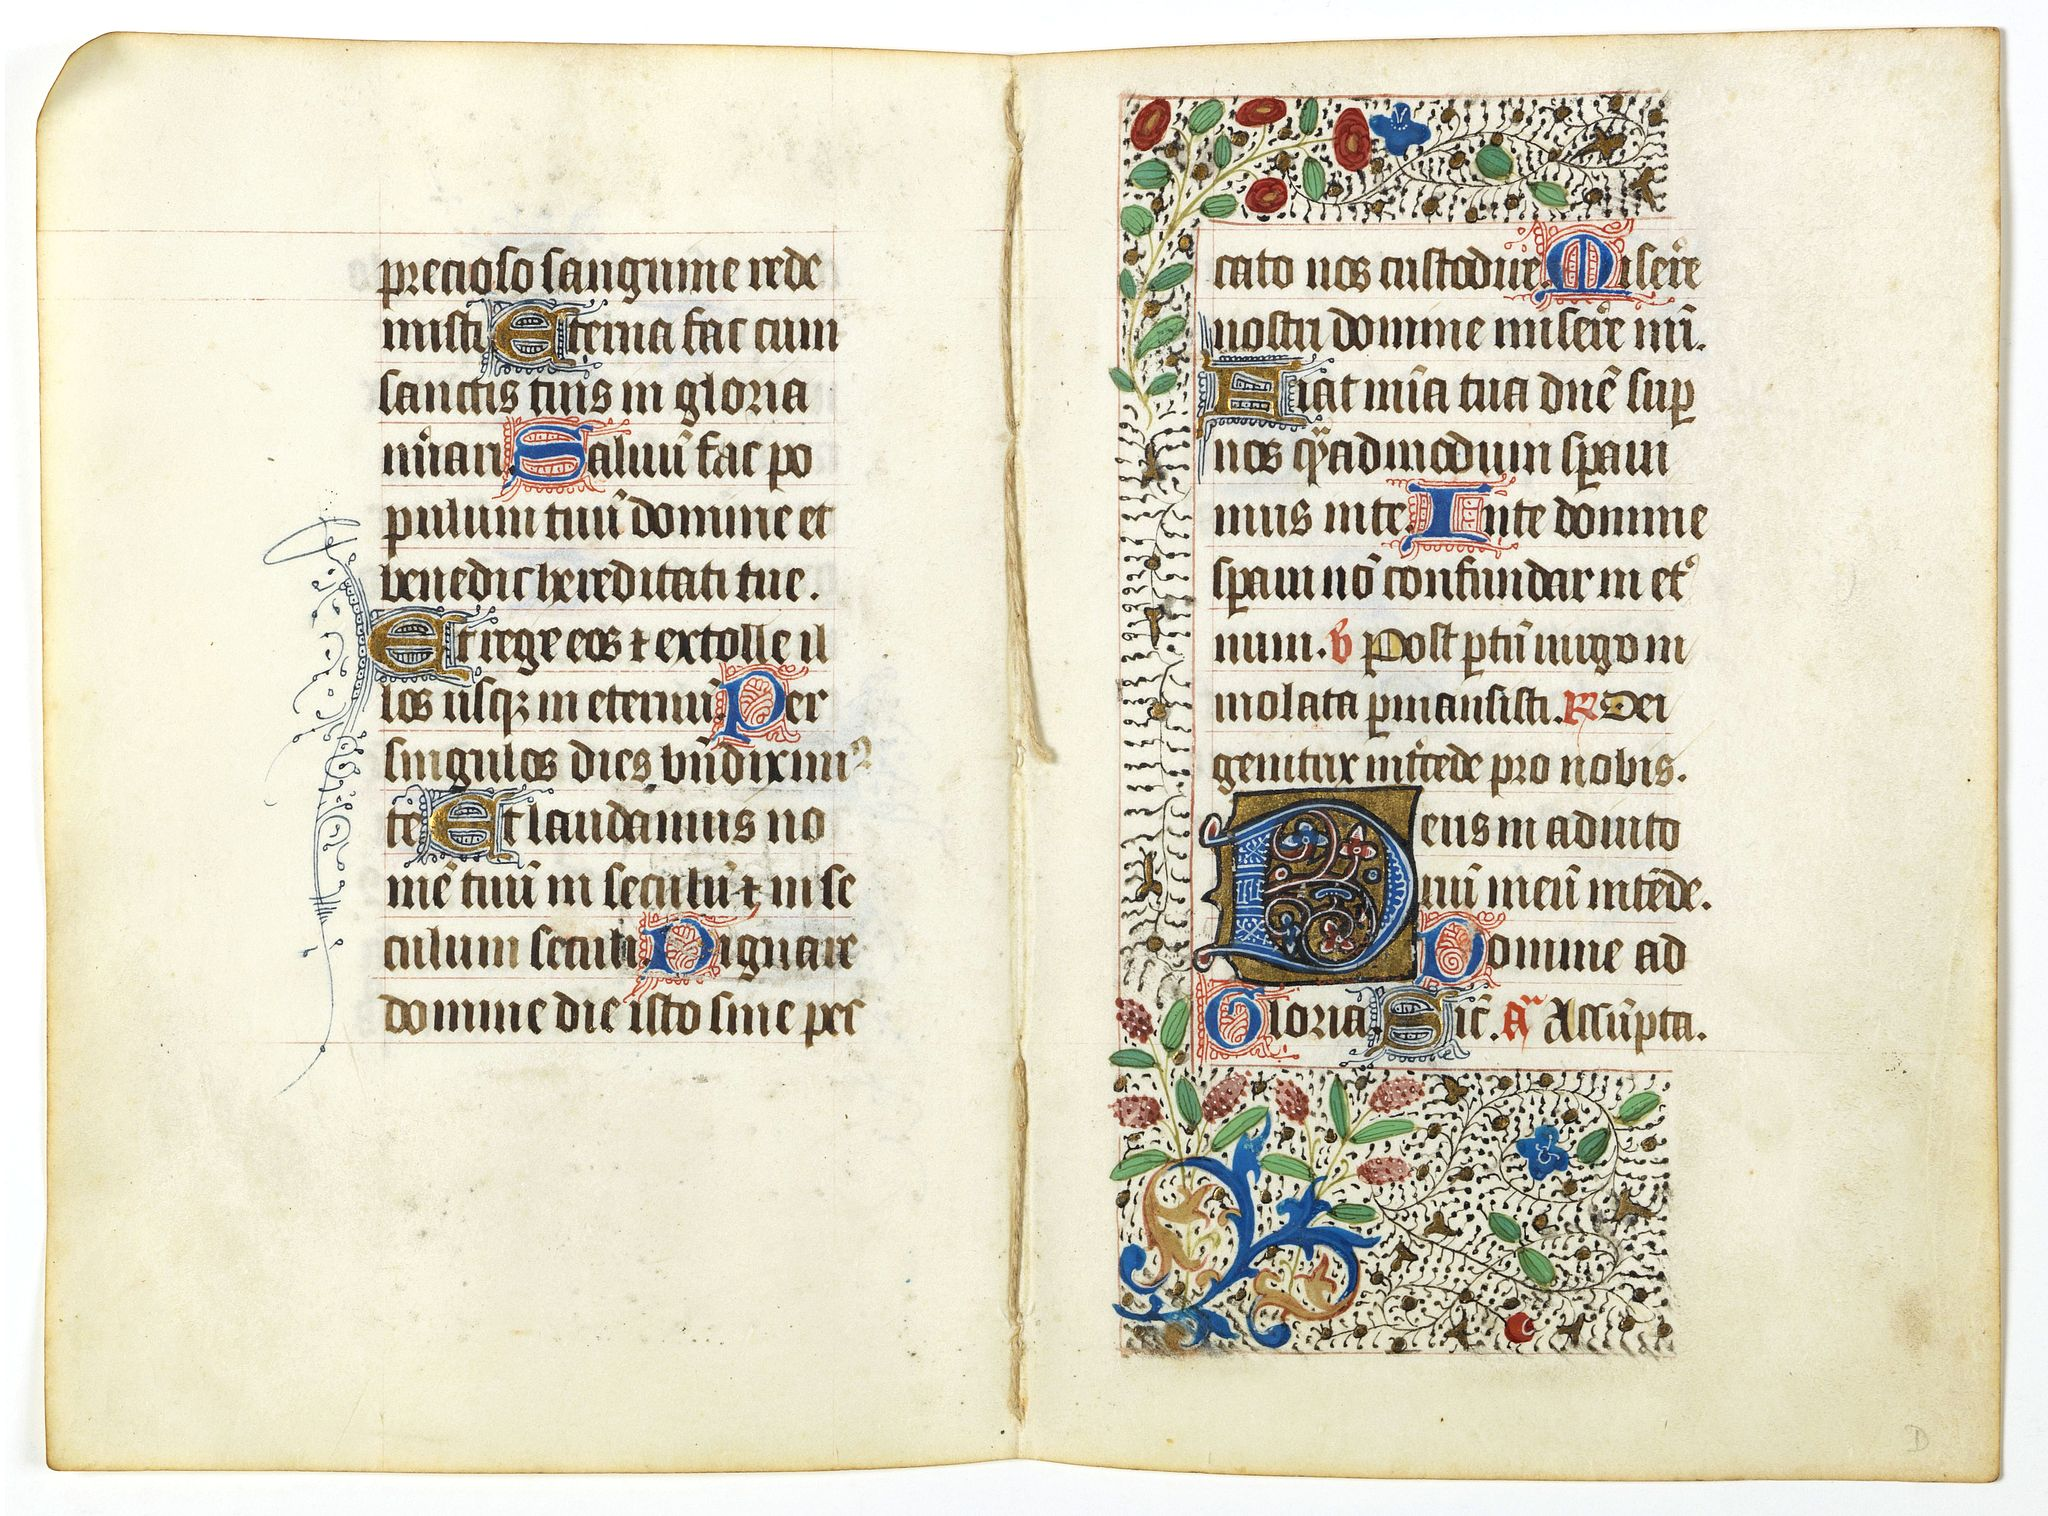 BOOK OF HOURS -  Double-page from a 15th. century book of hours.